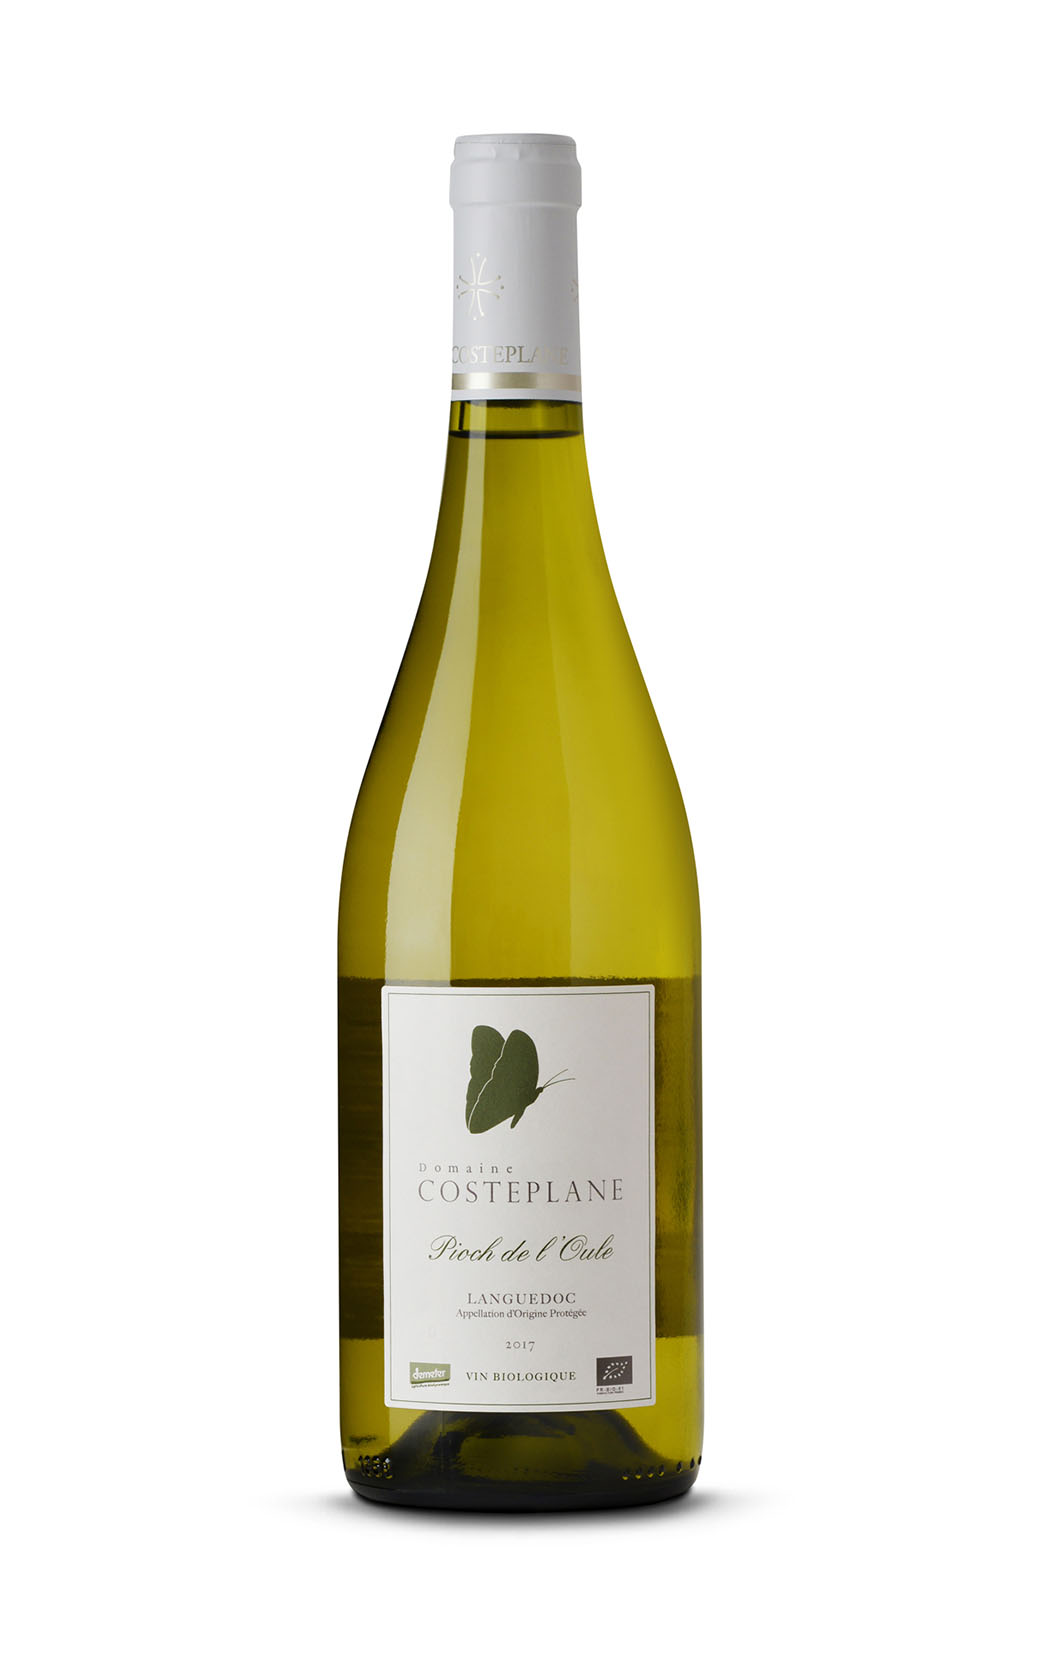 Photo bouteille de vin blanc